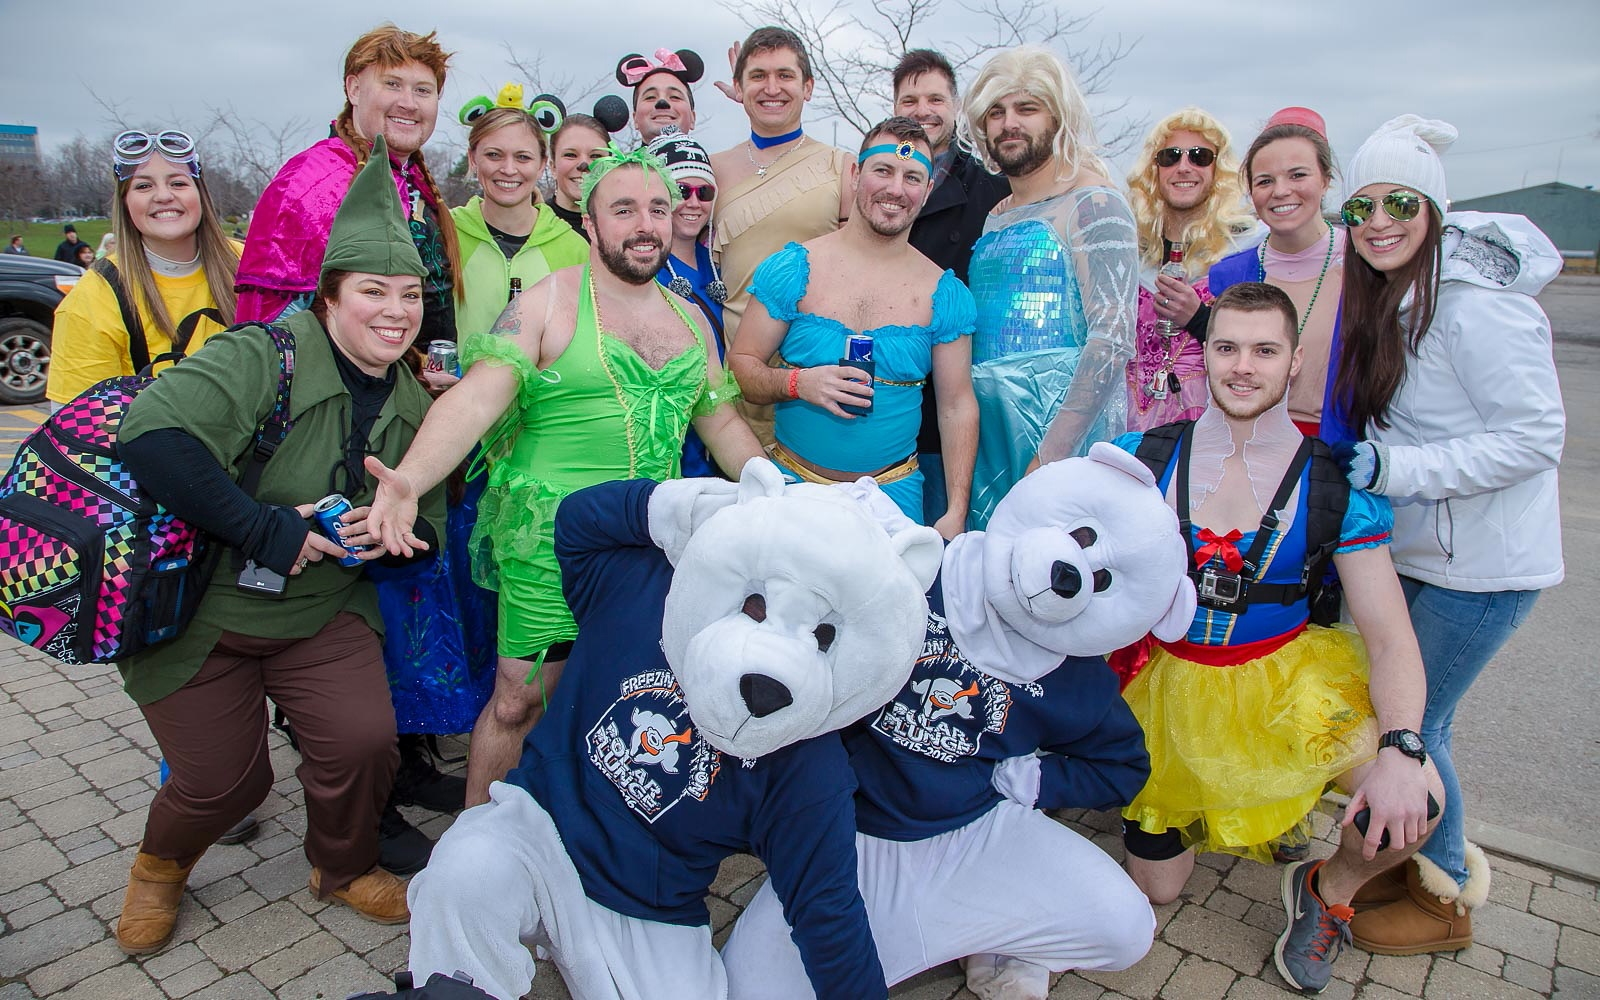 Smiling faces and costumes at the 2015 Polar Plunge at Woodlawn Beach. (Don Nieman/Special to The News)